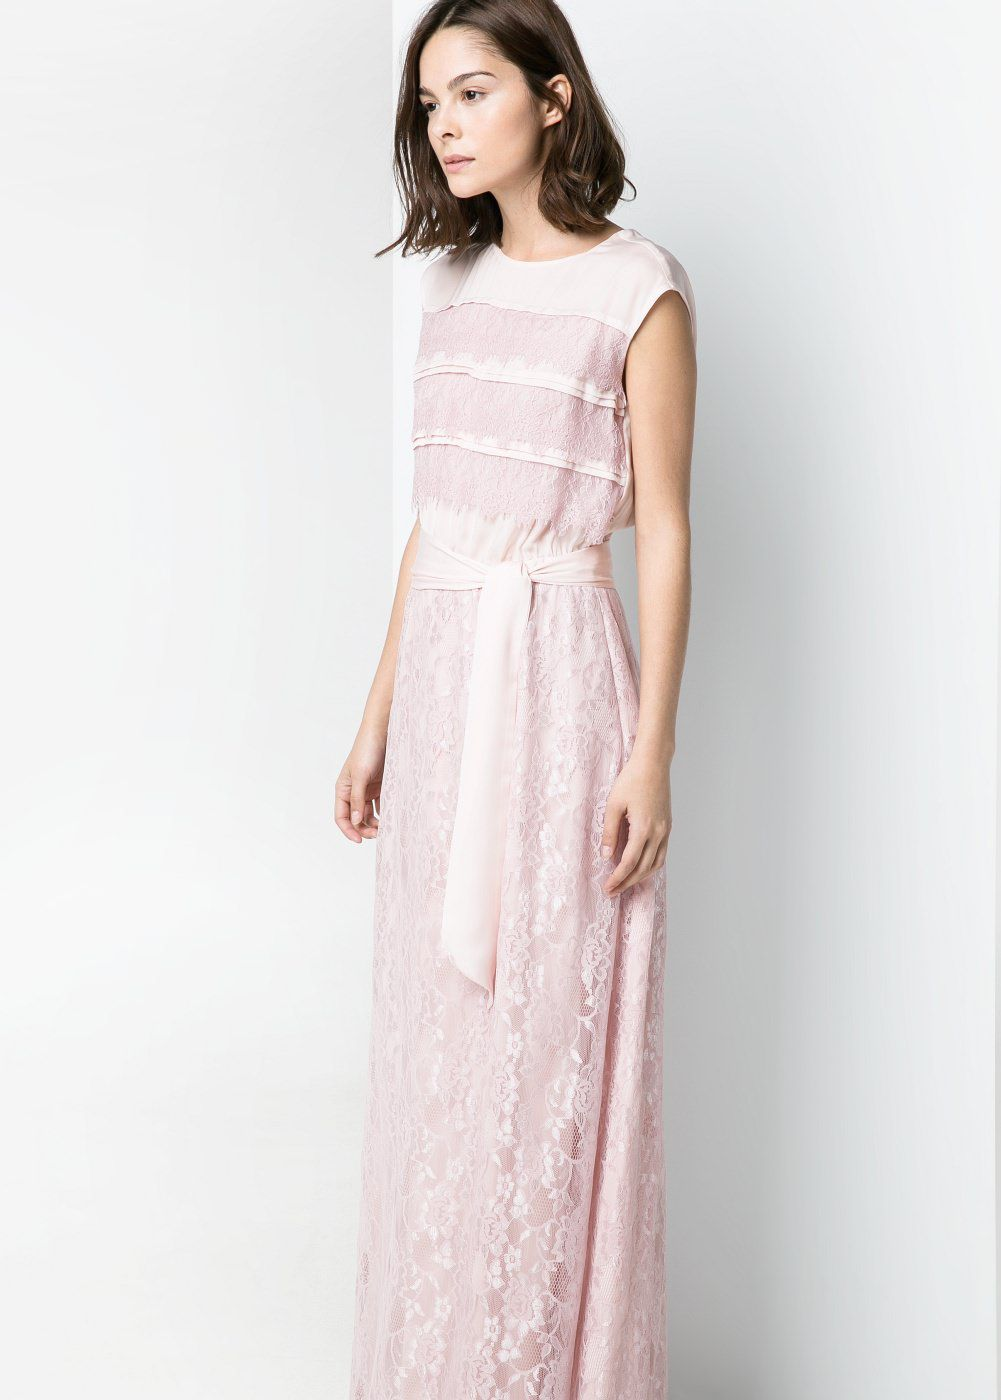 7 affordable pink long dresses to wear to a wedding laiamagazine mango floral long dress ombrellifo Choice Image